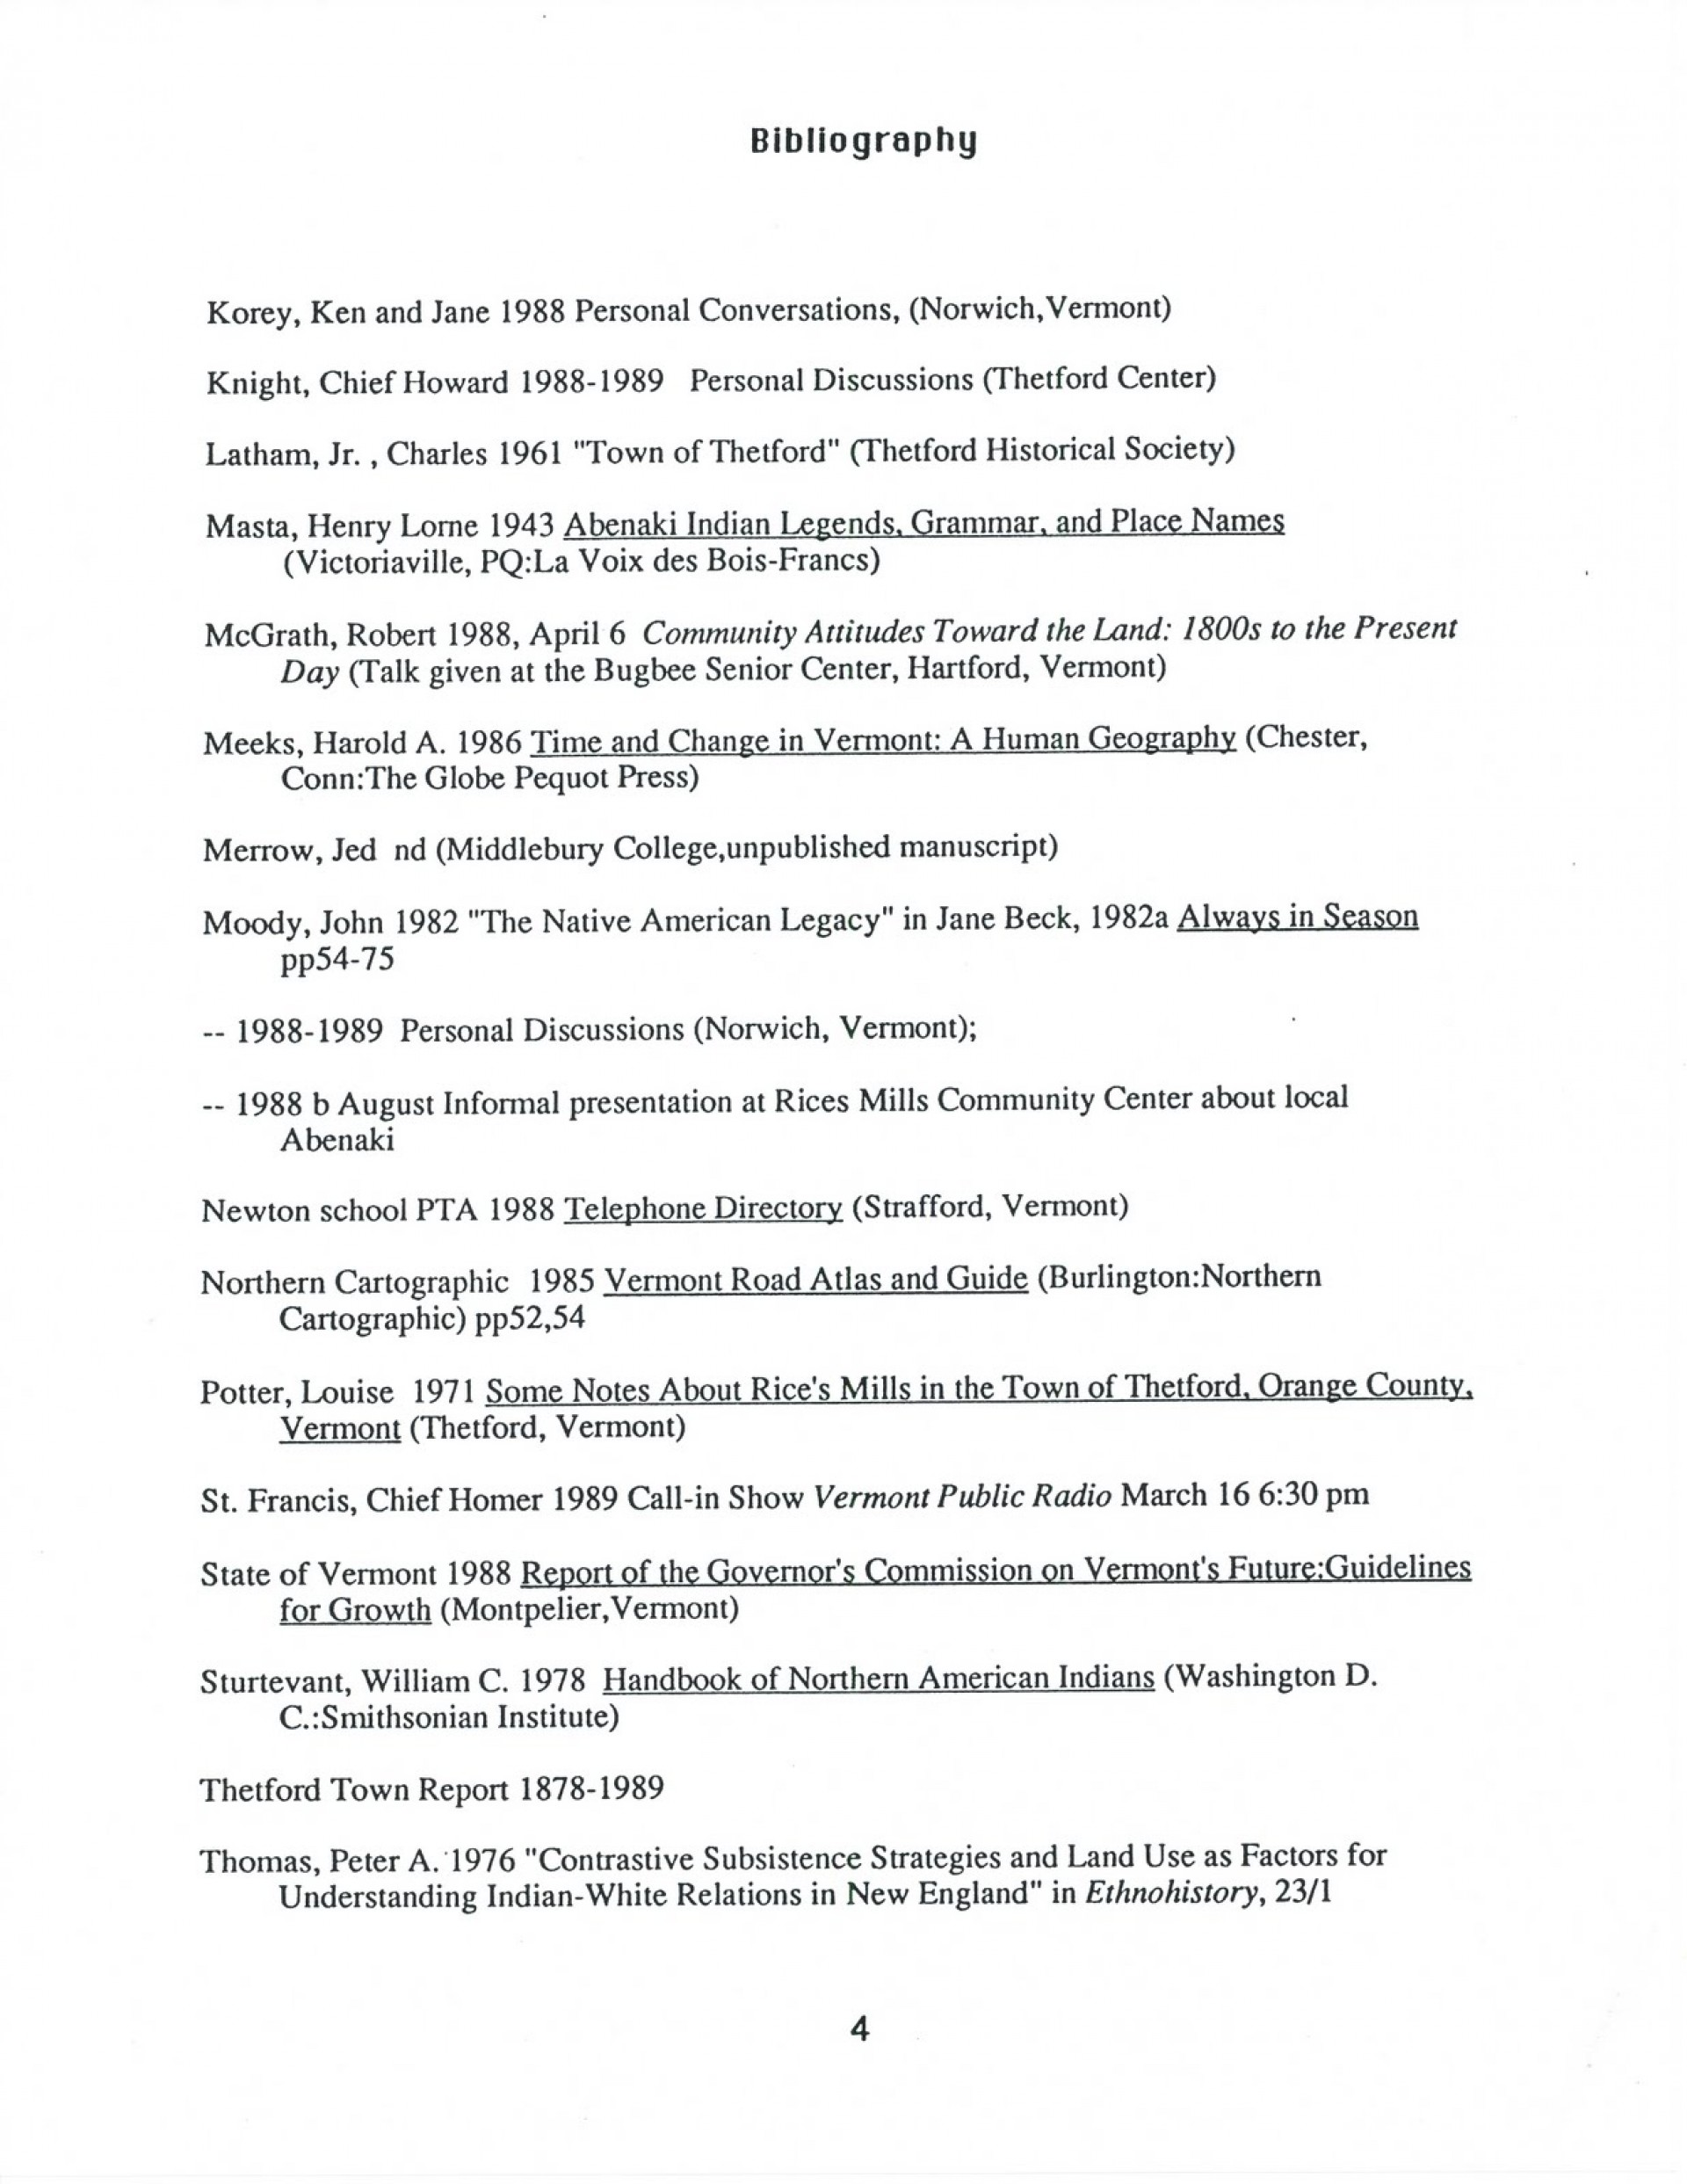 004 Uchicago Essays Politics Language And Time On Politica University Of Chicago Essay Questions Past Astounding Law That Worked Length Reddit 1920